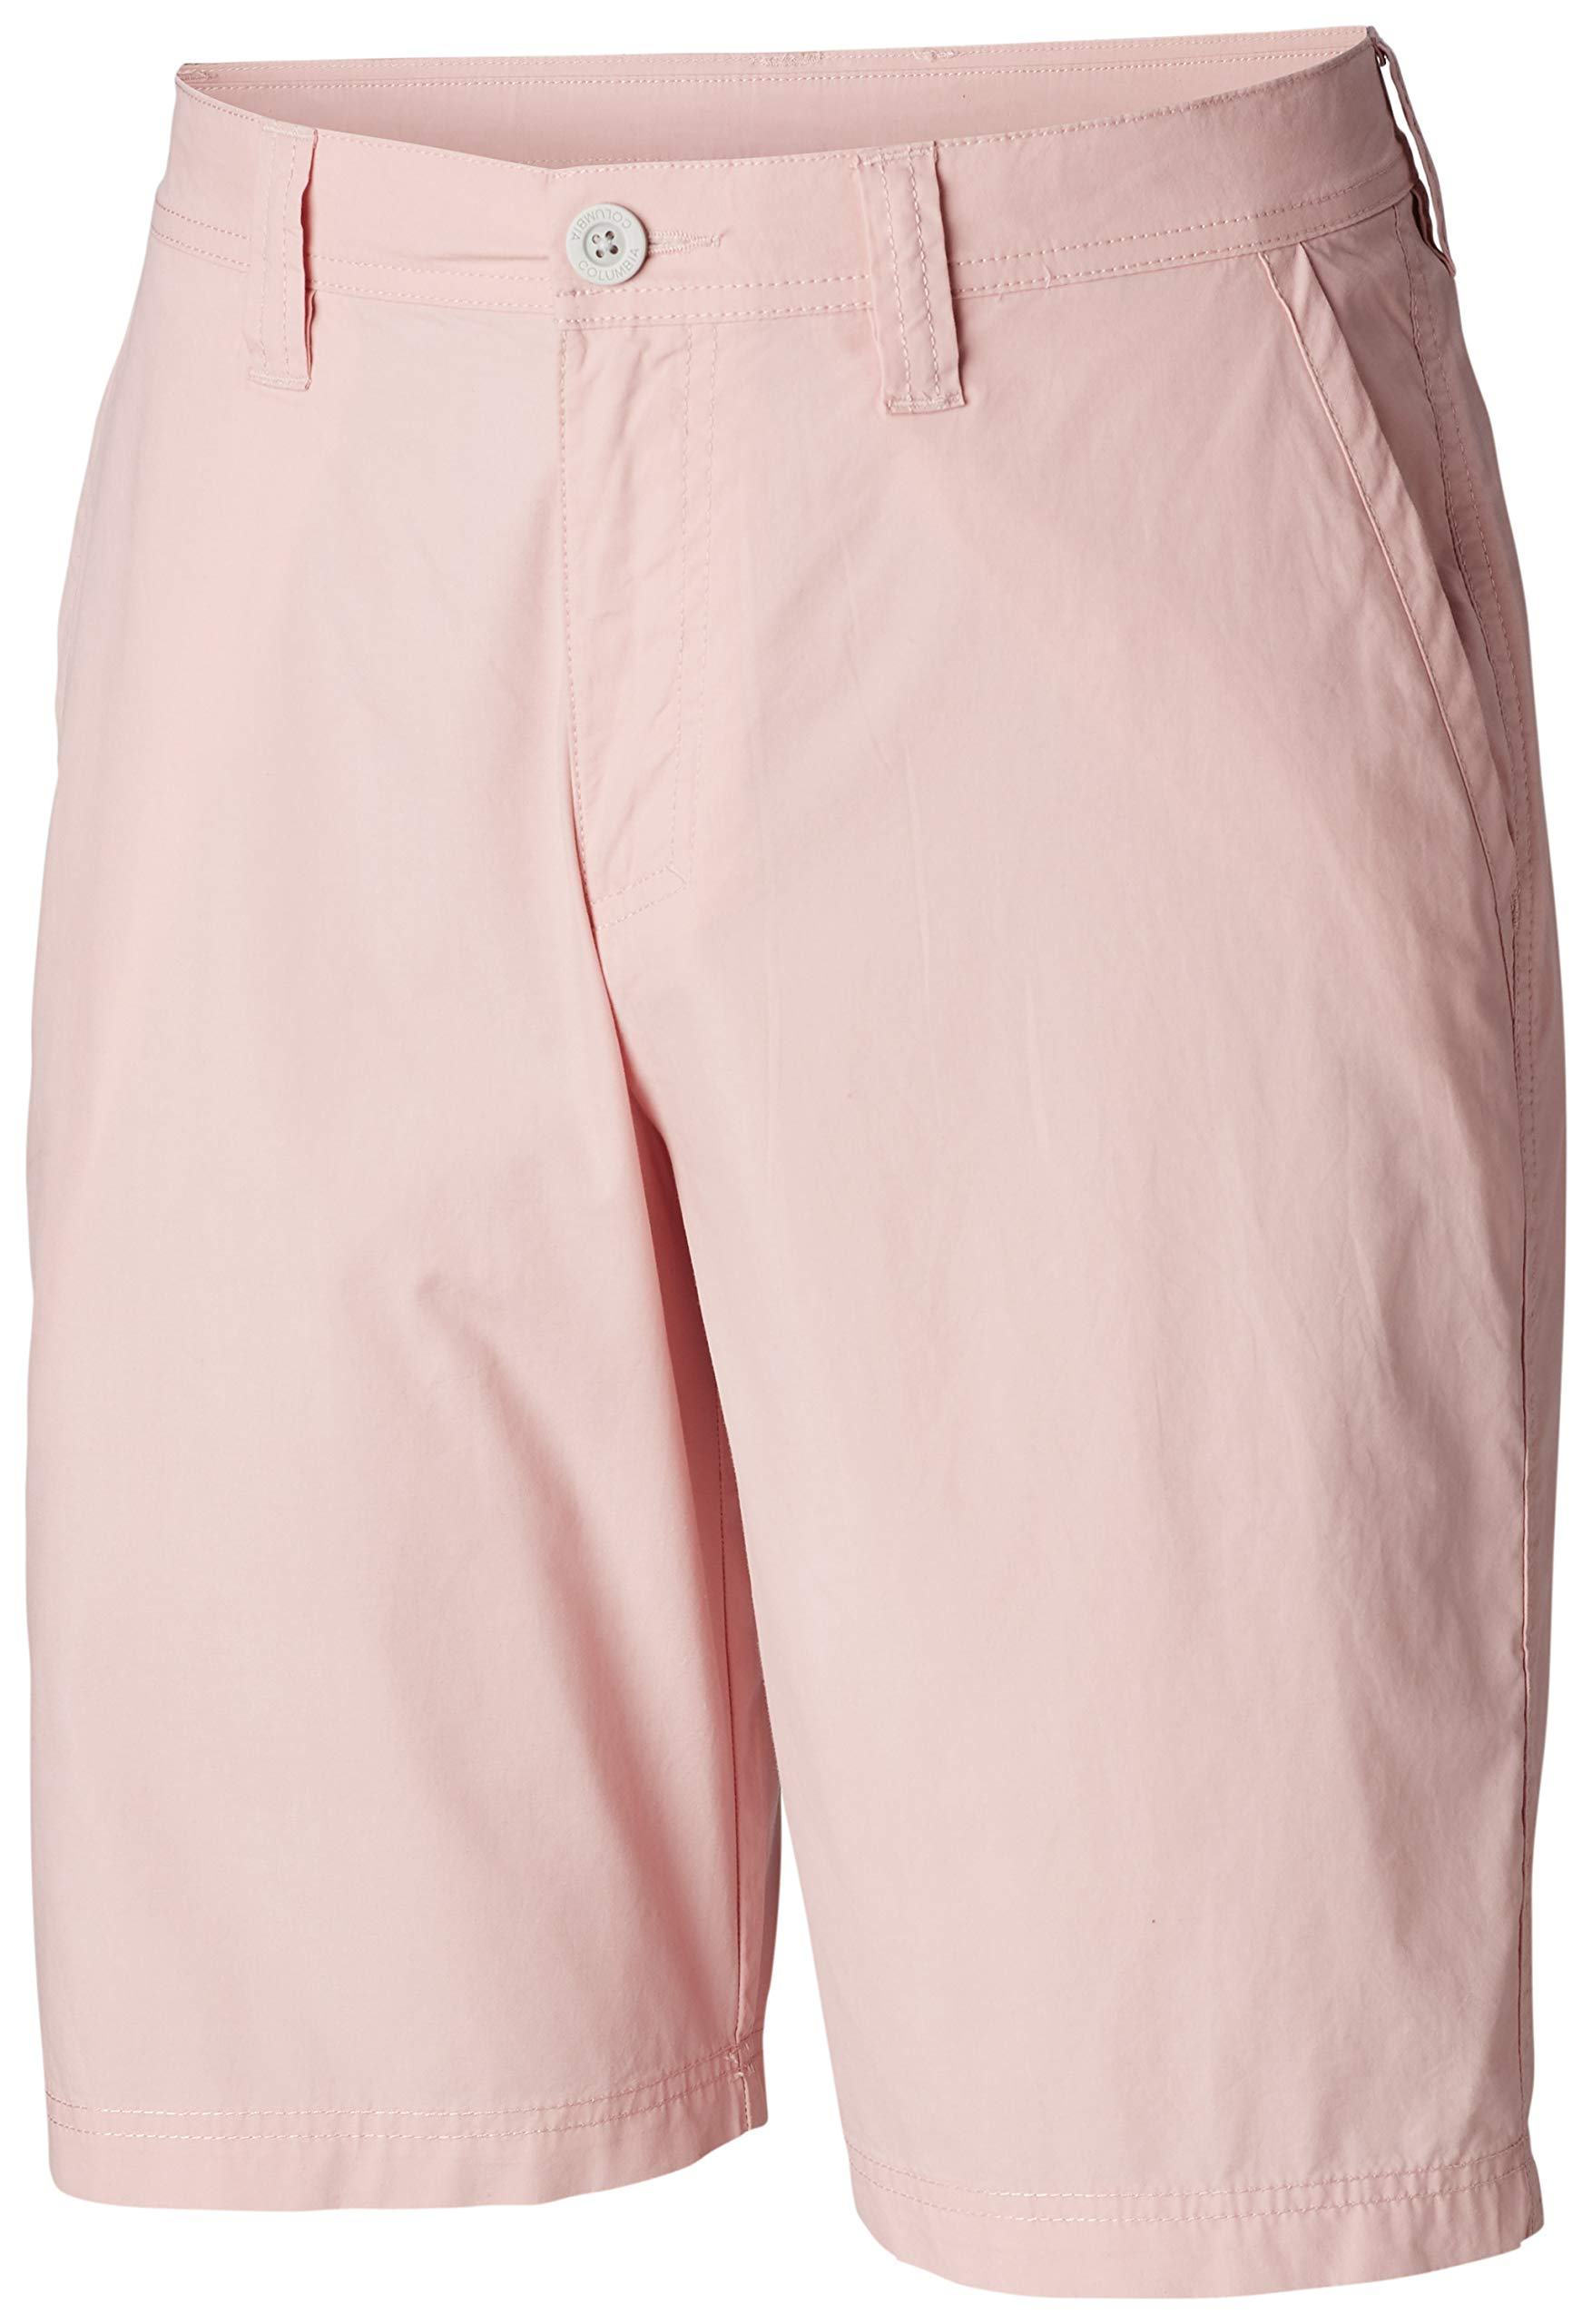 Columbia Men's Washed Out Chino Short, Rosewater, 36x8